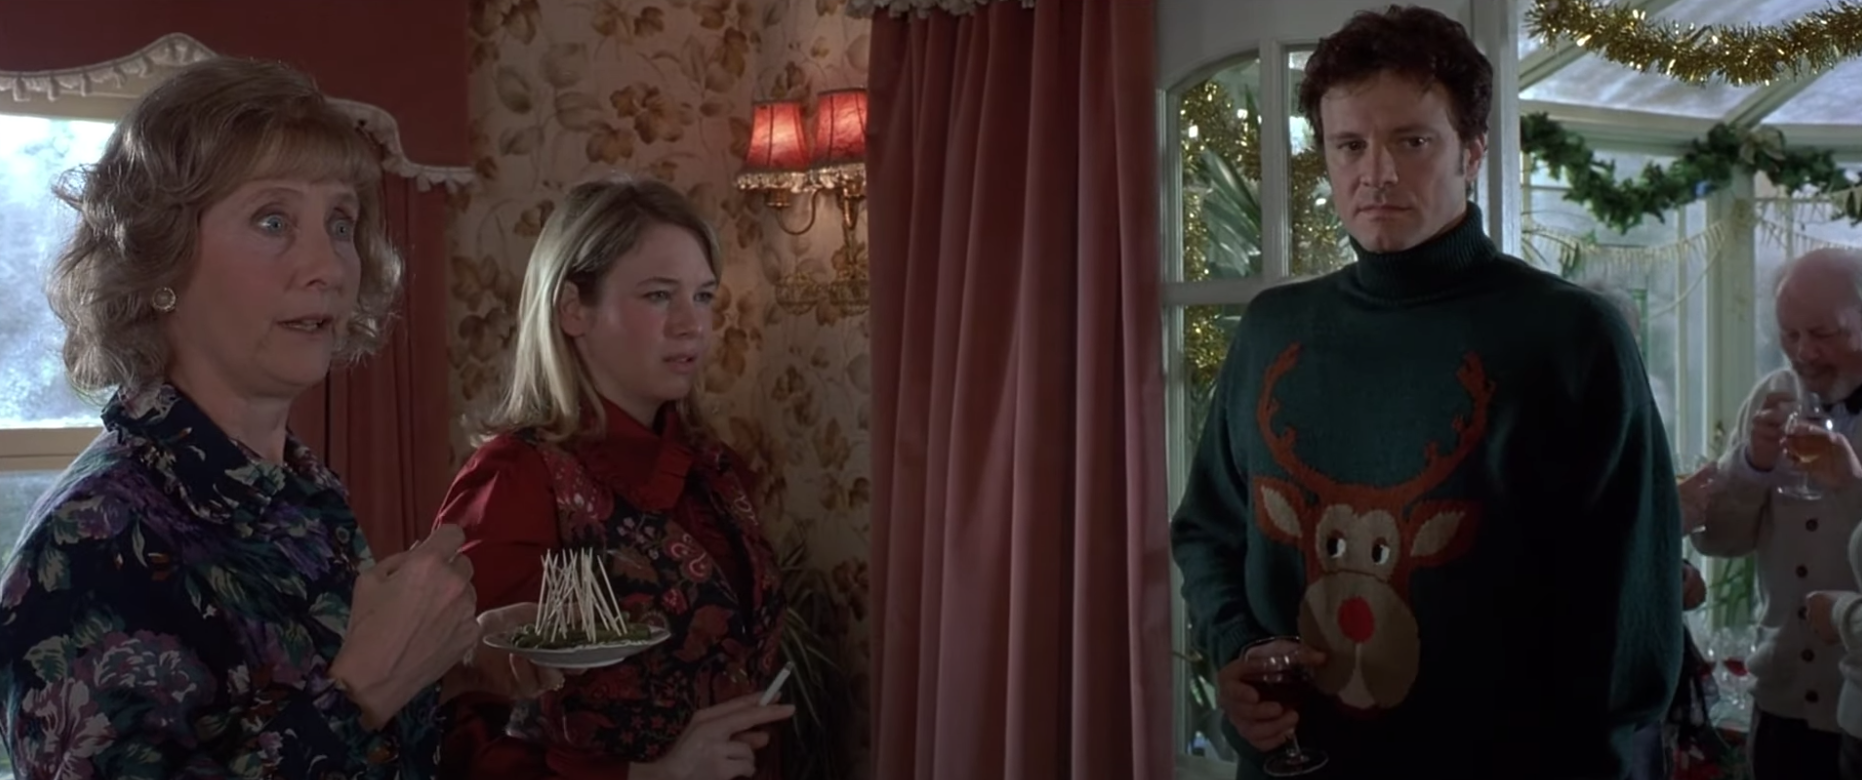 """Bridget, her mother, and Mark stand together at a holiday party in """"Bridget Jones's Diary."""""""